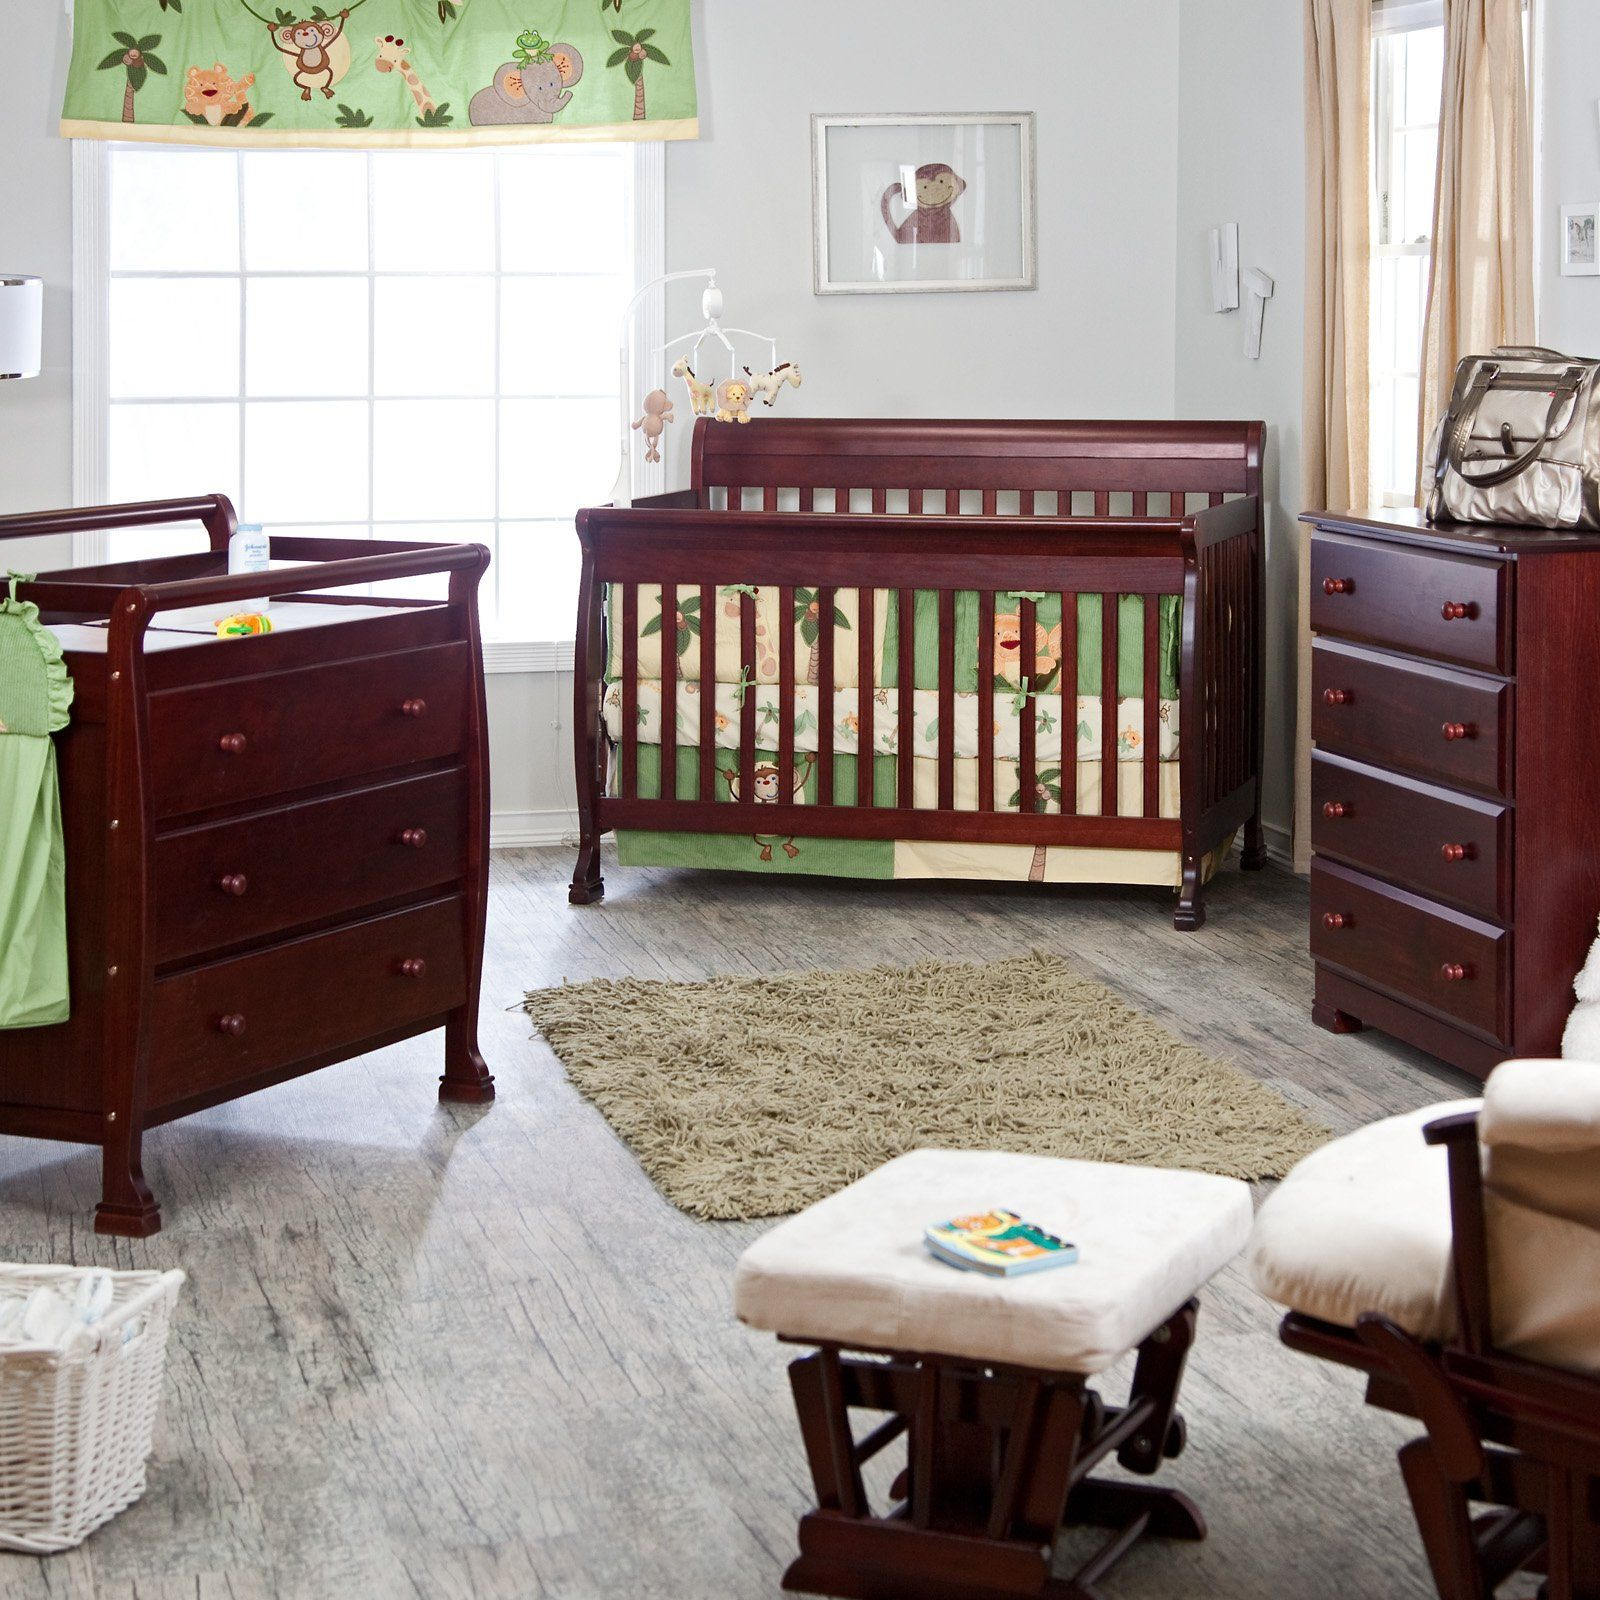 shipping convertible kalani wood free garden overstock home in davinci crib autumn product today